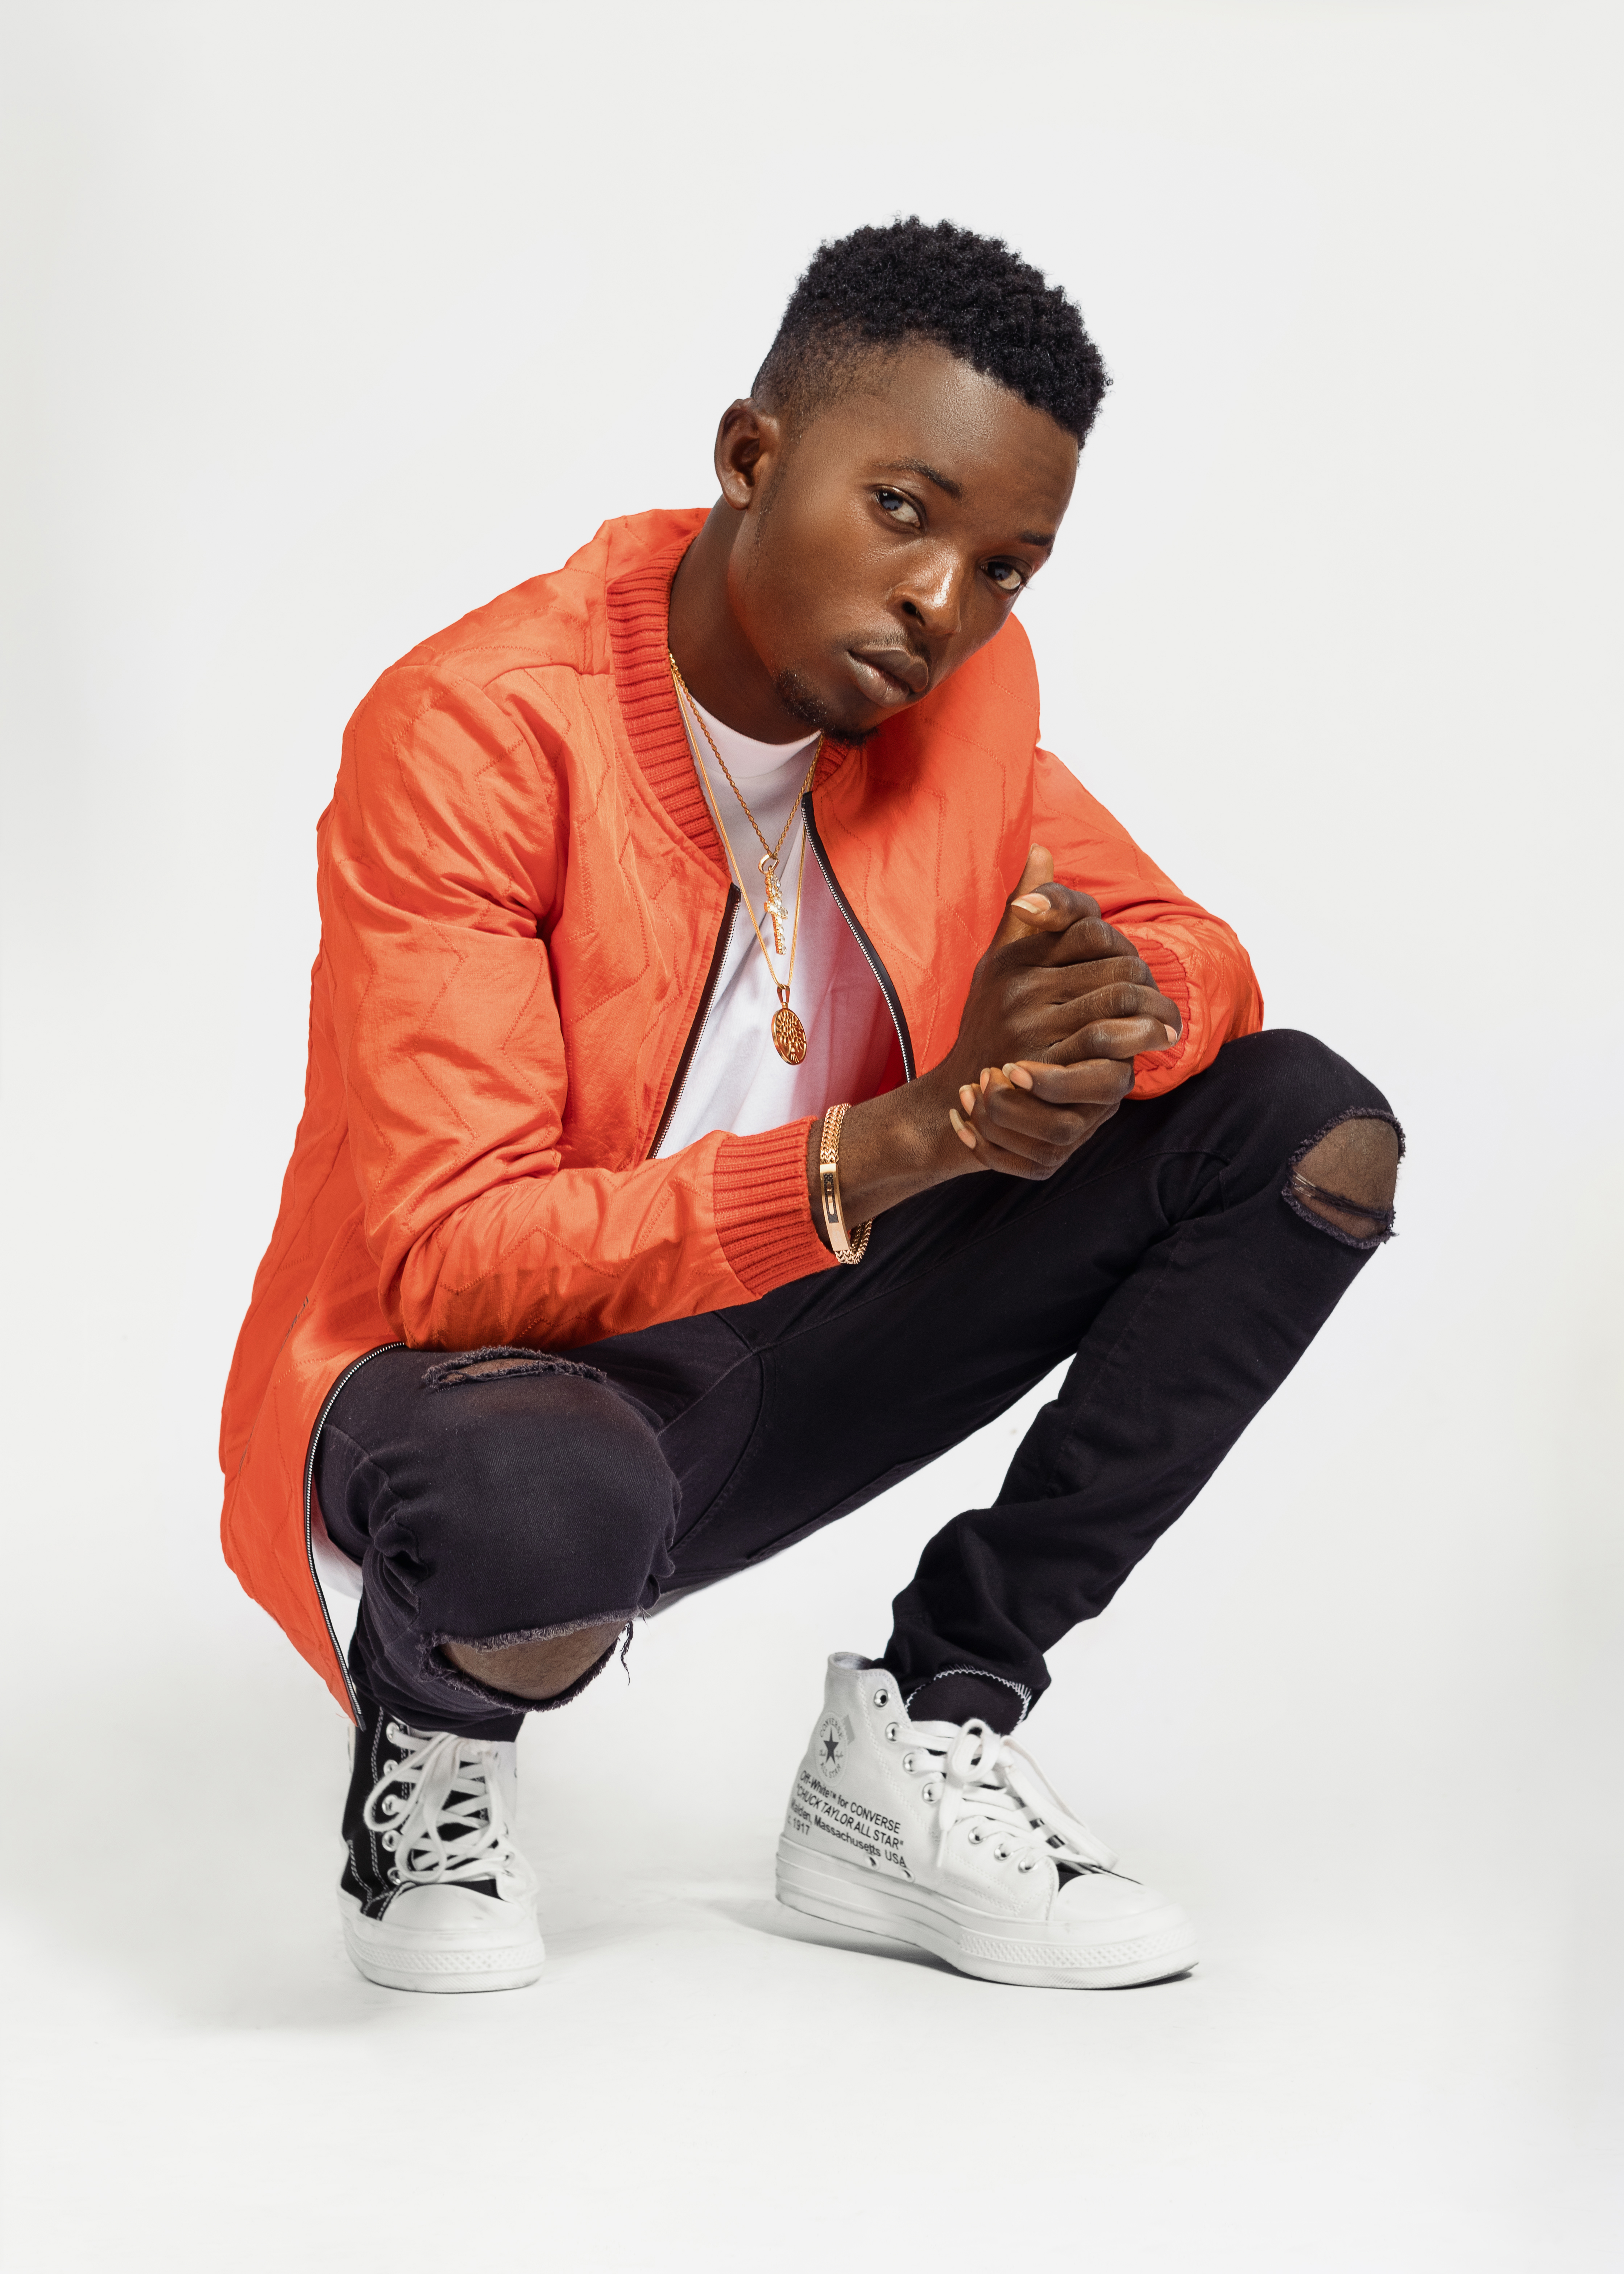 """Photo of SARO6IX RELEASES NEW PHOTOS FOR HIS MUCH ANTICIPATED SINGLE """"MY PACE"""""""